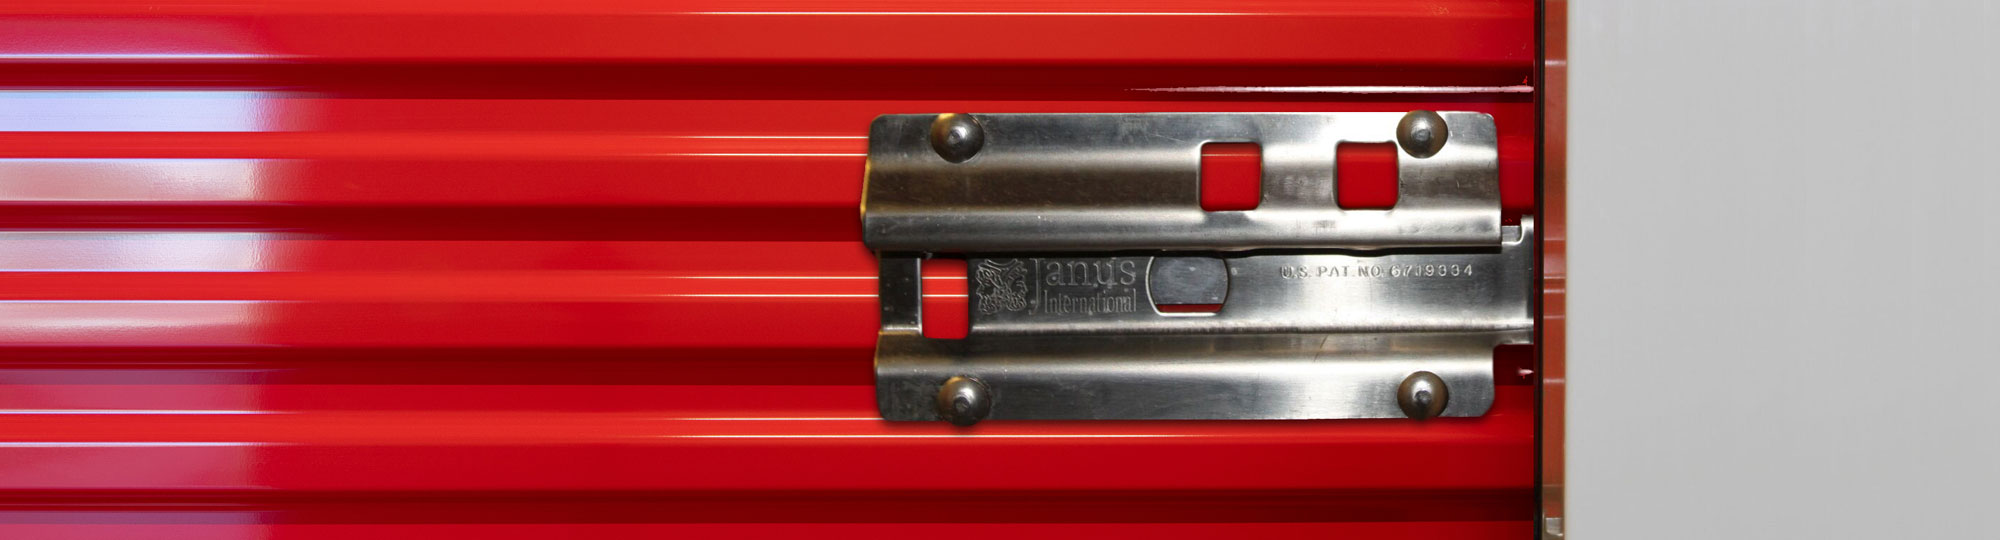 latches_banner_img.jpg